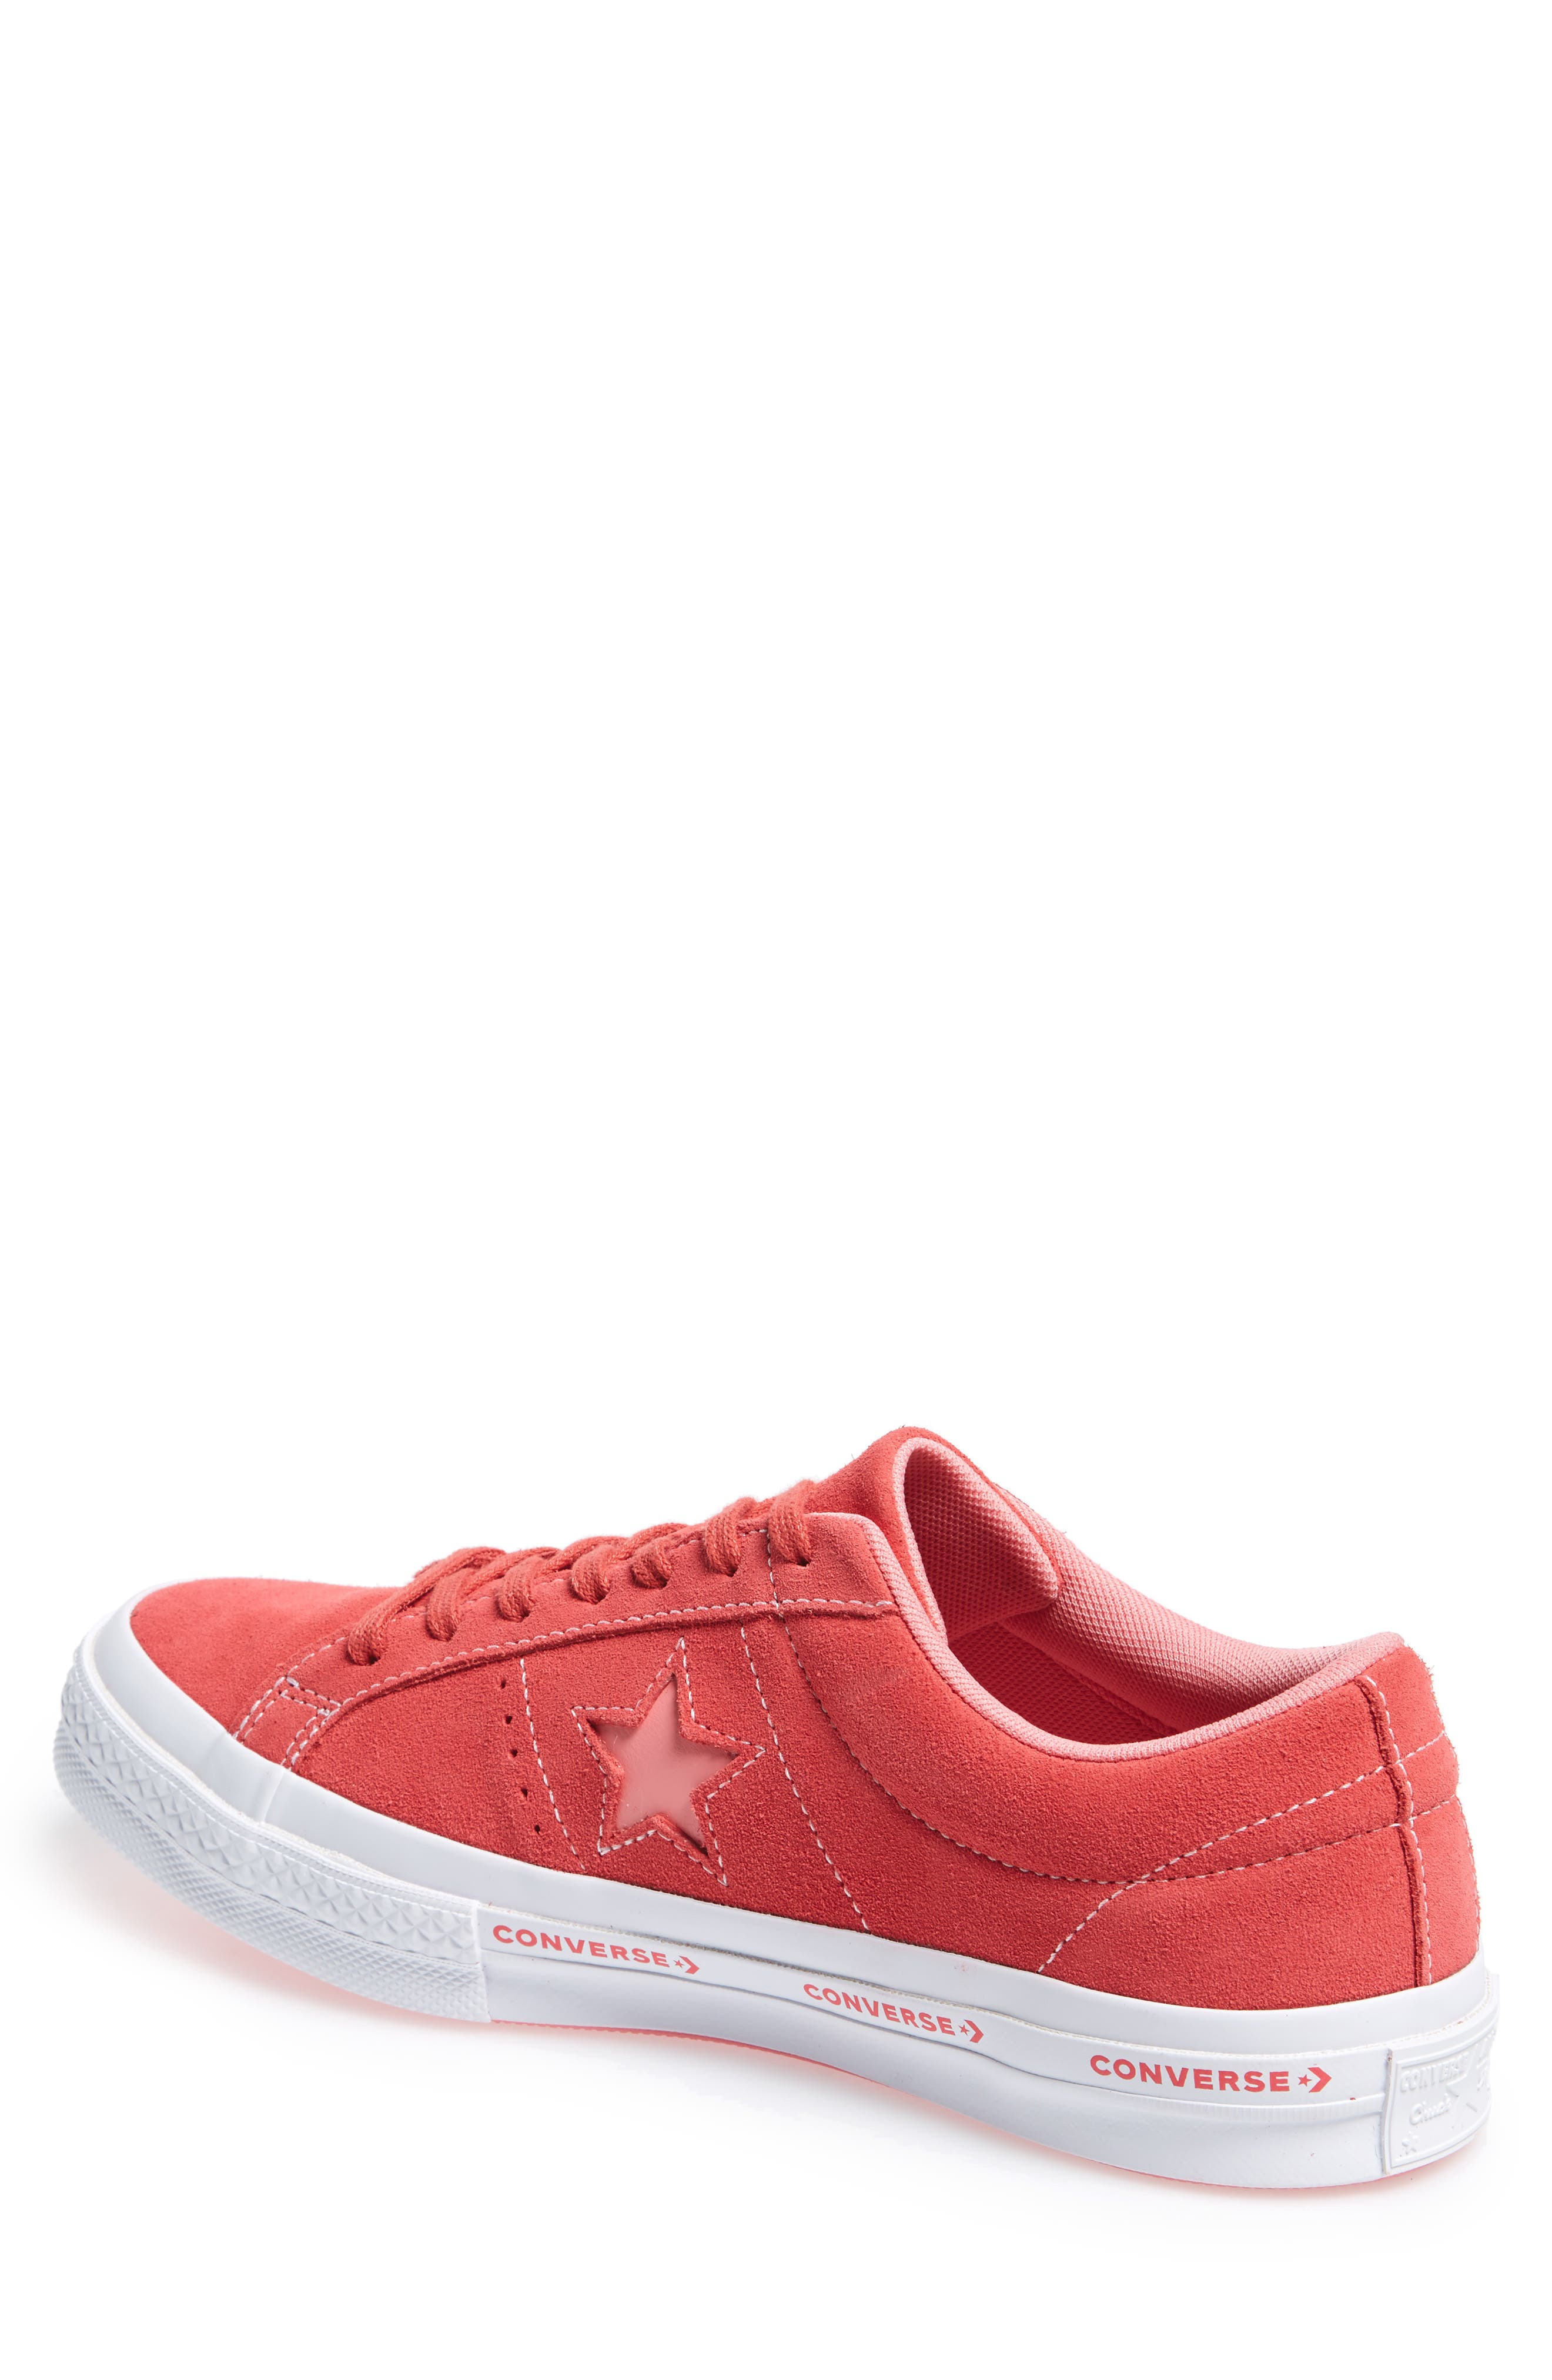 Chuck Taylor<sup>®</sup> One Star Pinstripe Sneaker,                             Alternate thumbnail 2, color,                             Paradise Pink Suede